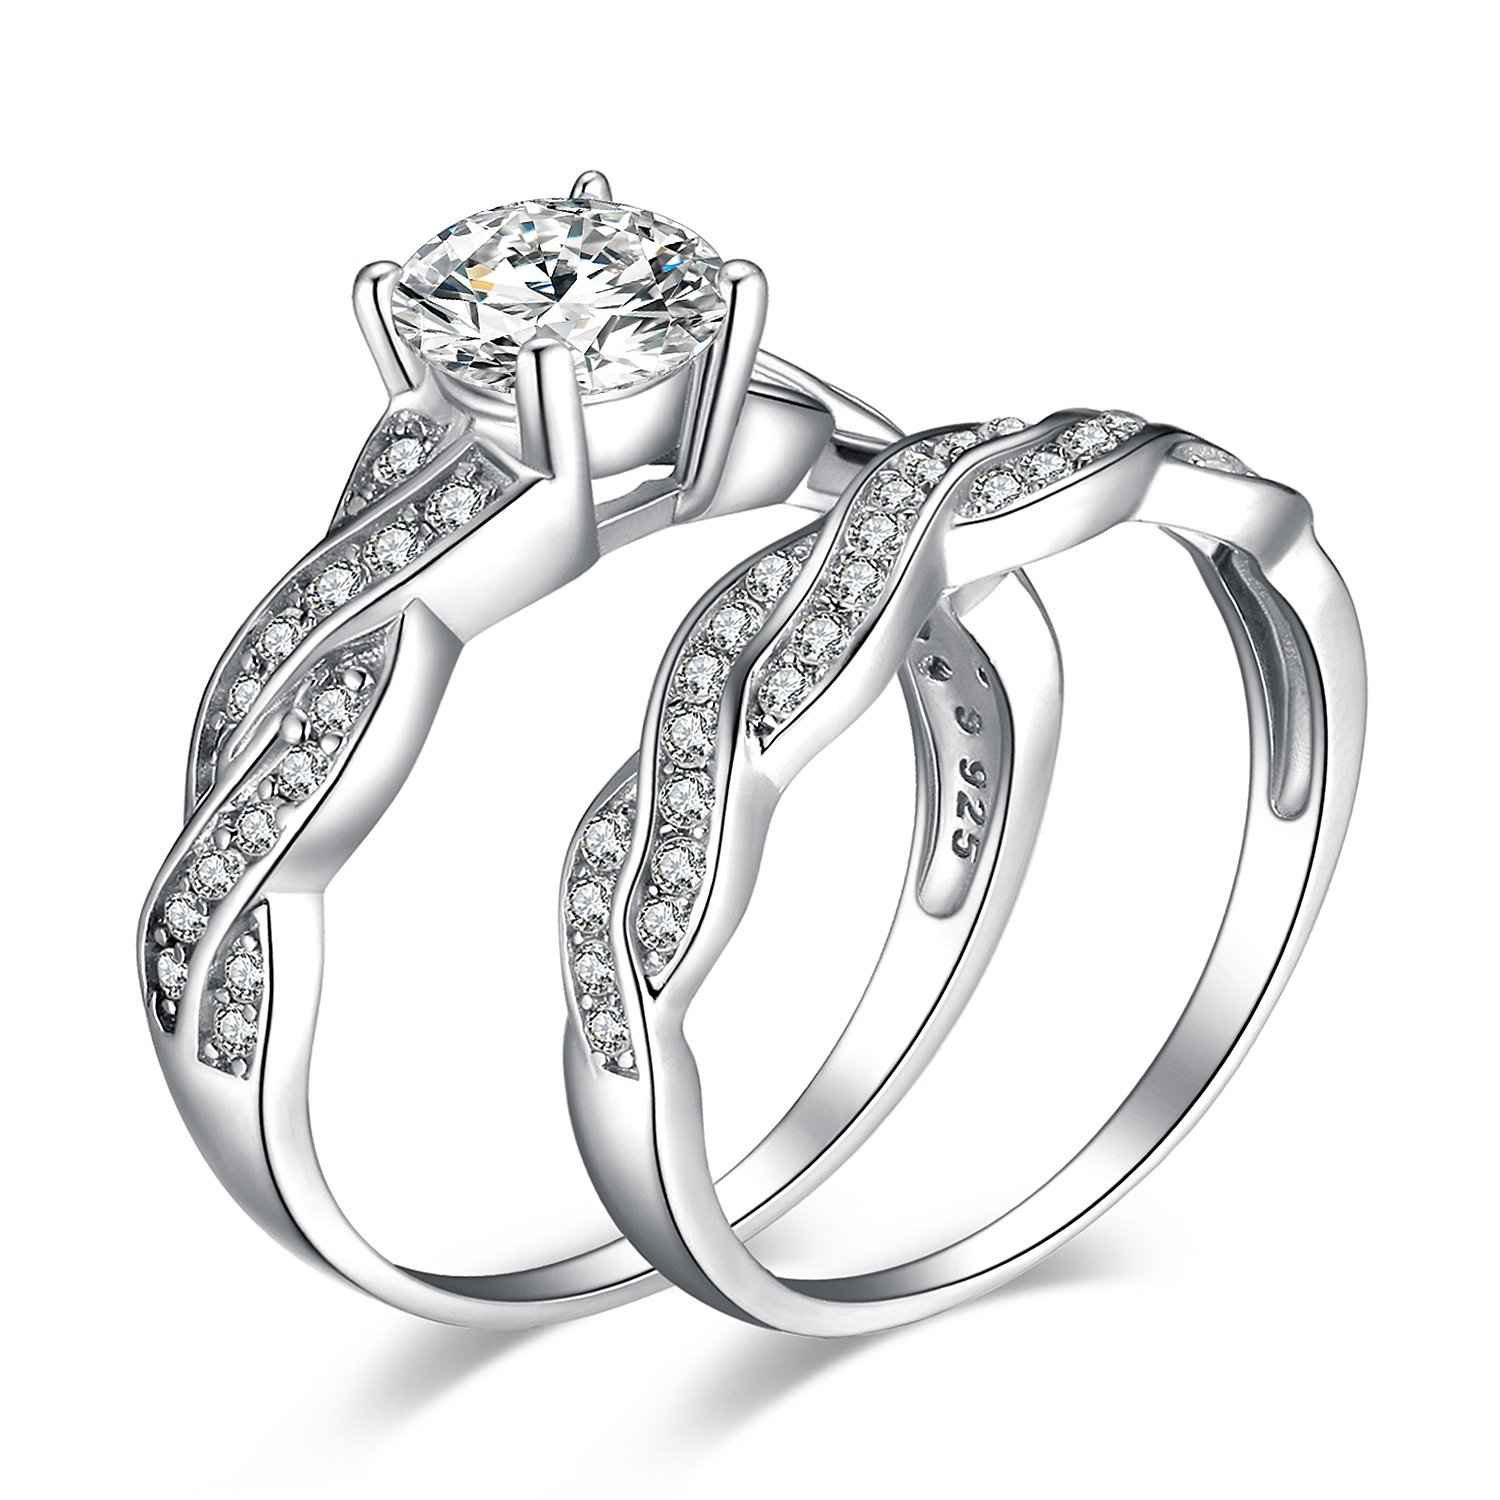 JewelryPalace Wedding Bands Rings Engagement Rings Anniversary Promise Rings 925 Sterling Silver Rings 1.5ct White Cubic Zirconia X Infinity CZ Rings For Women Size 7 by JewelryPalace